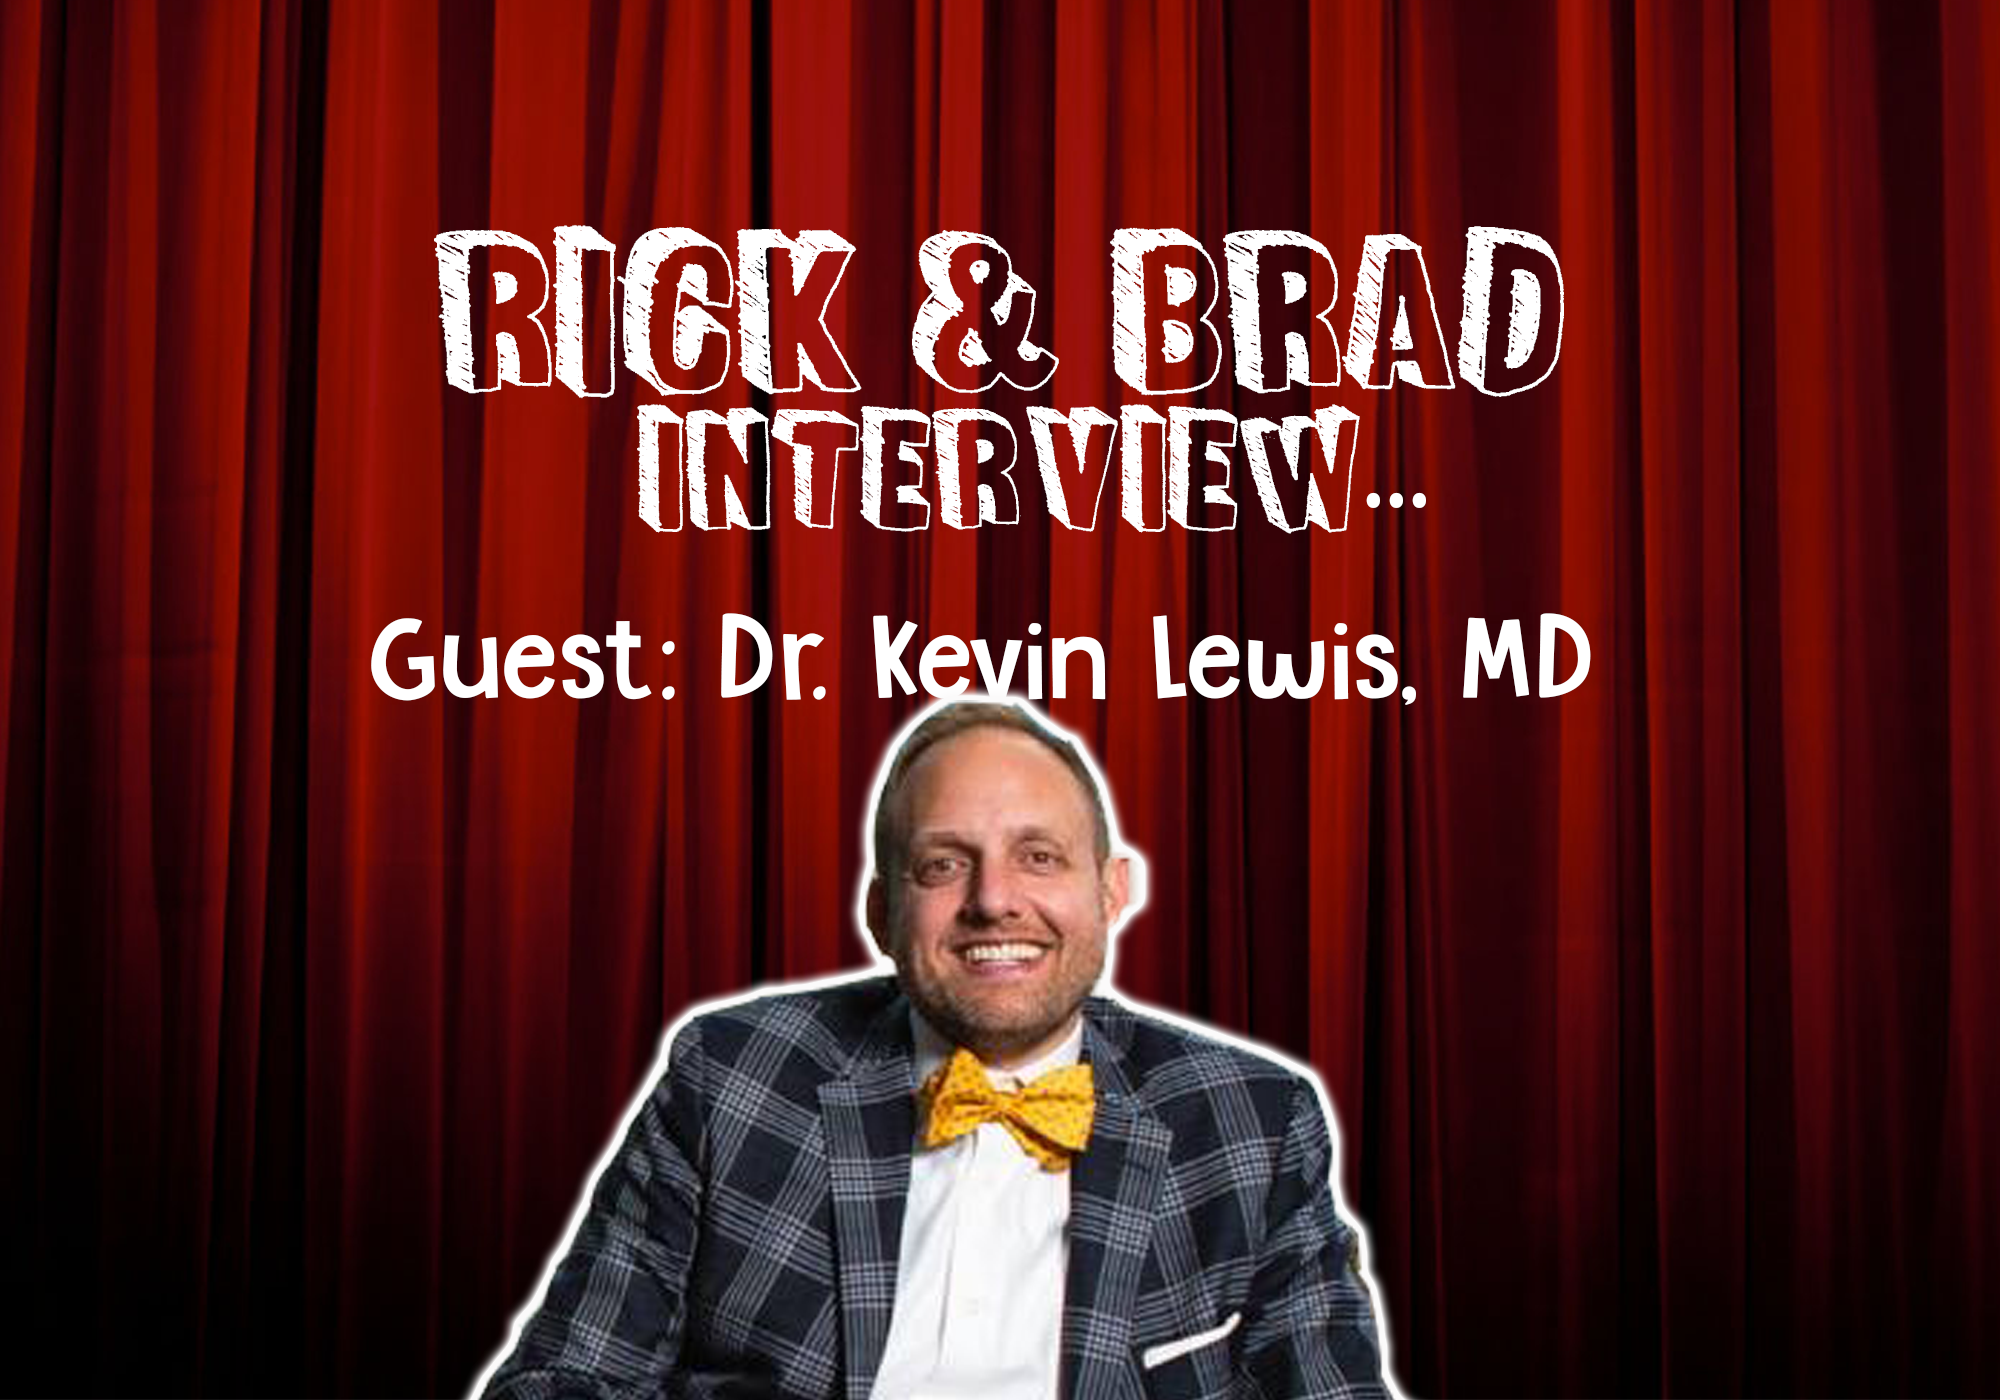 [PODCAST] Taking Calls with Dr. Kevin Lewis